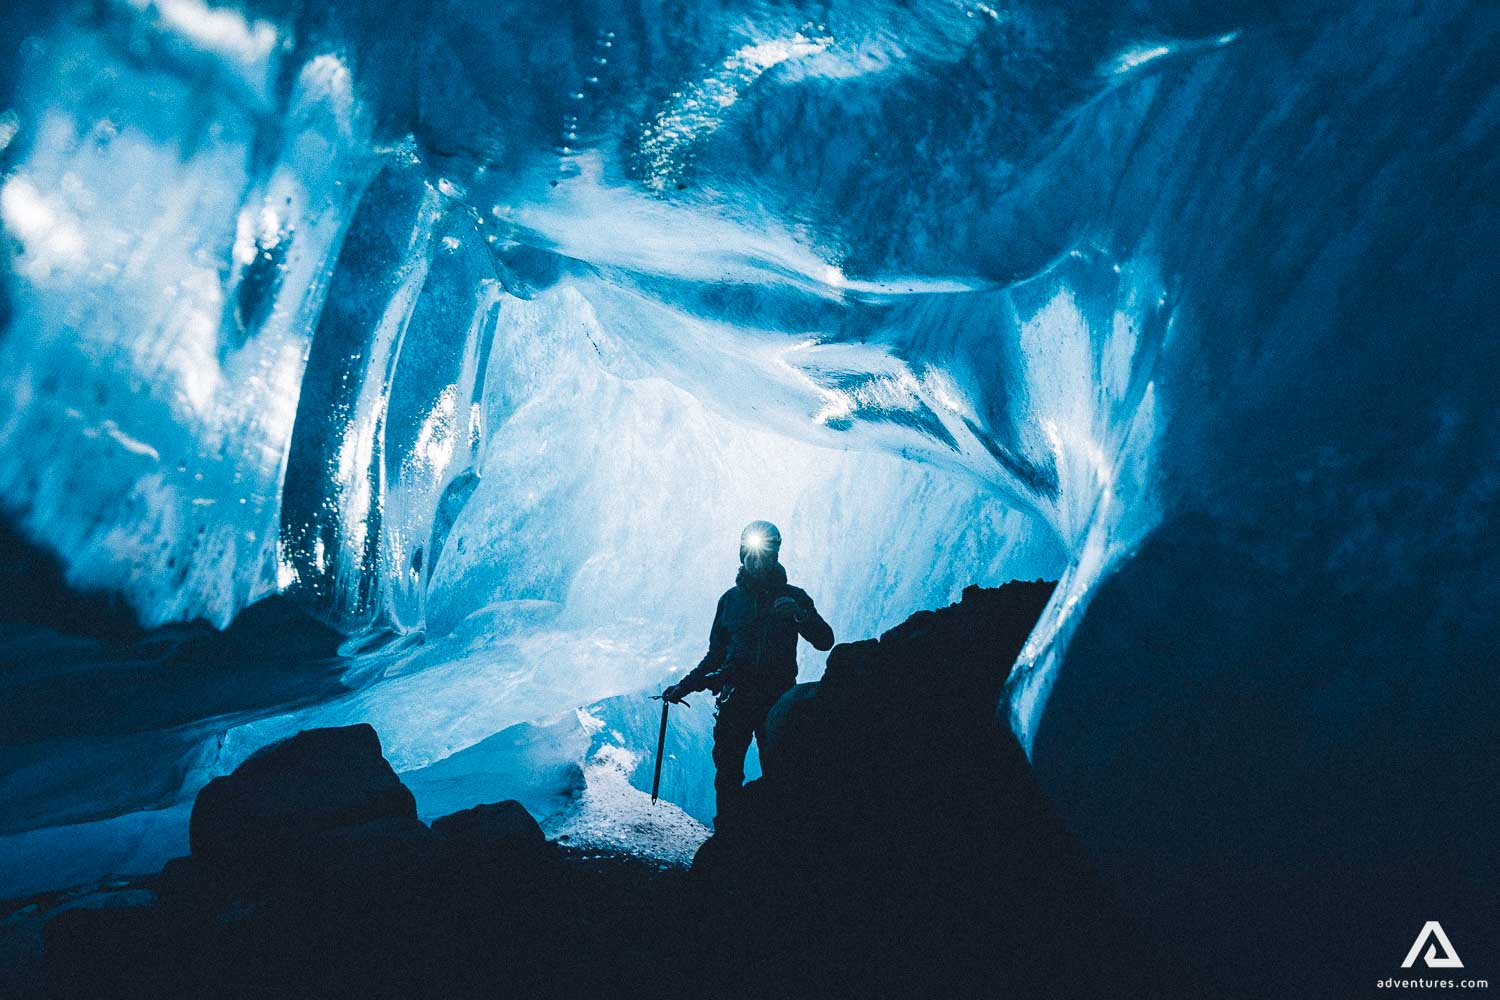 Crystal blue ice cave